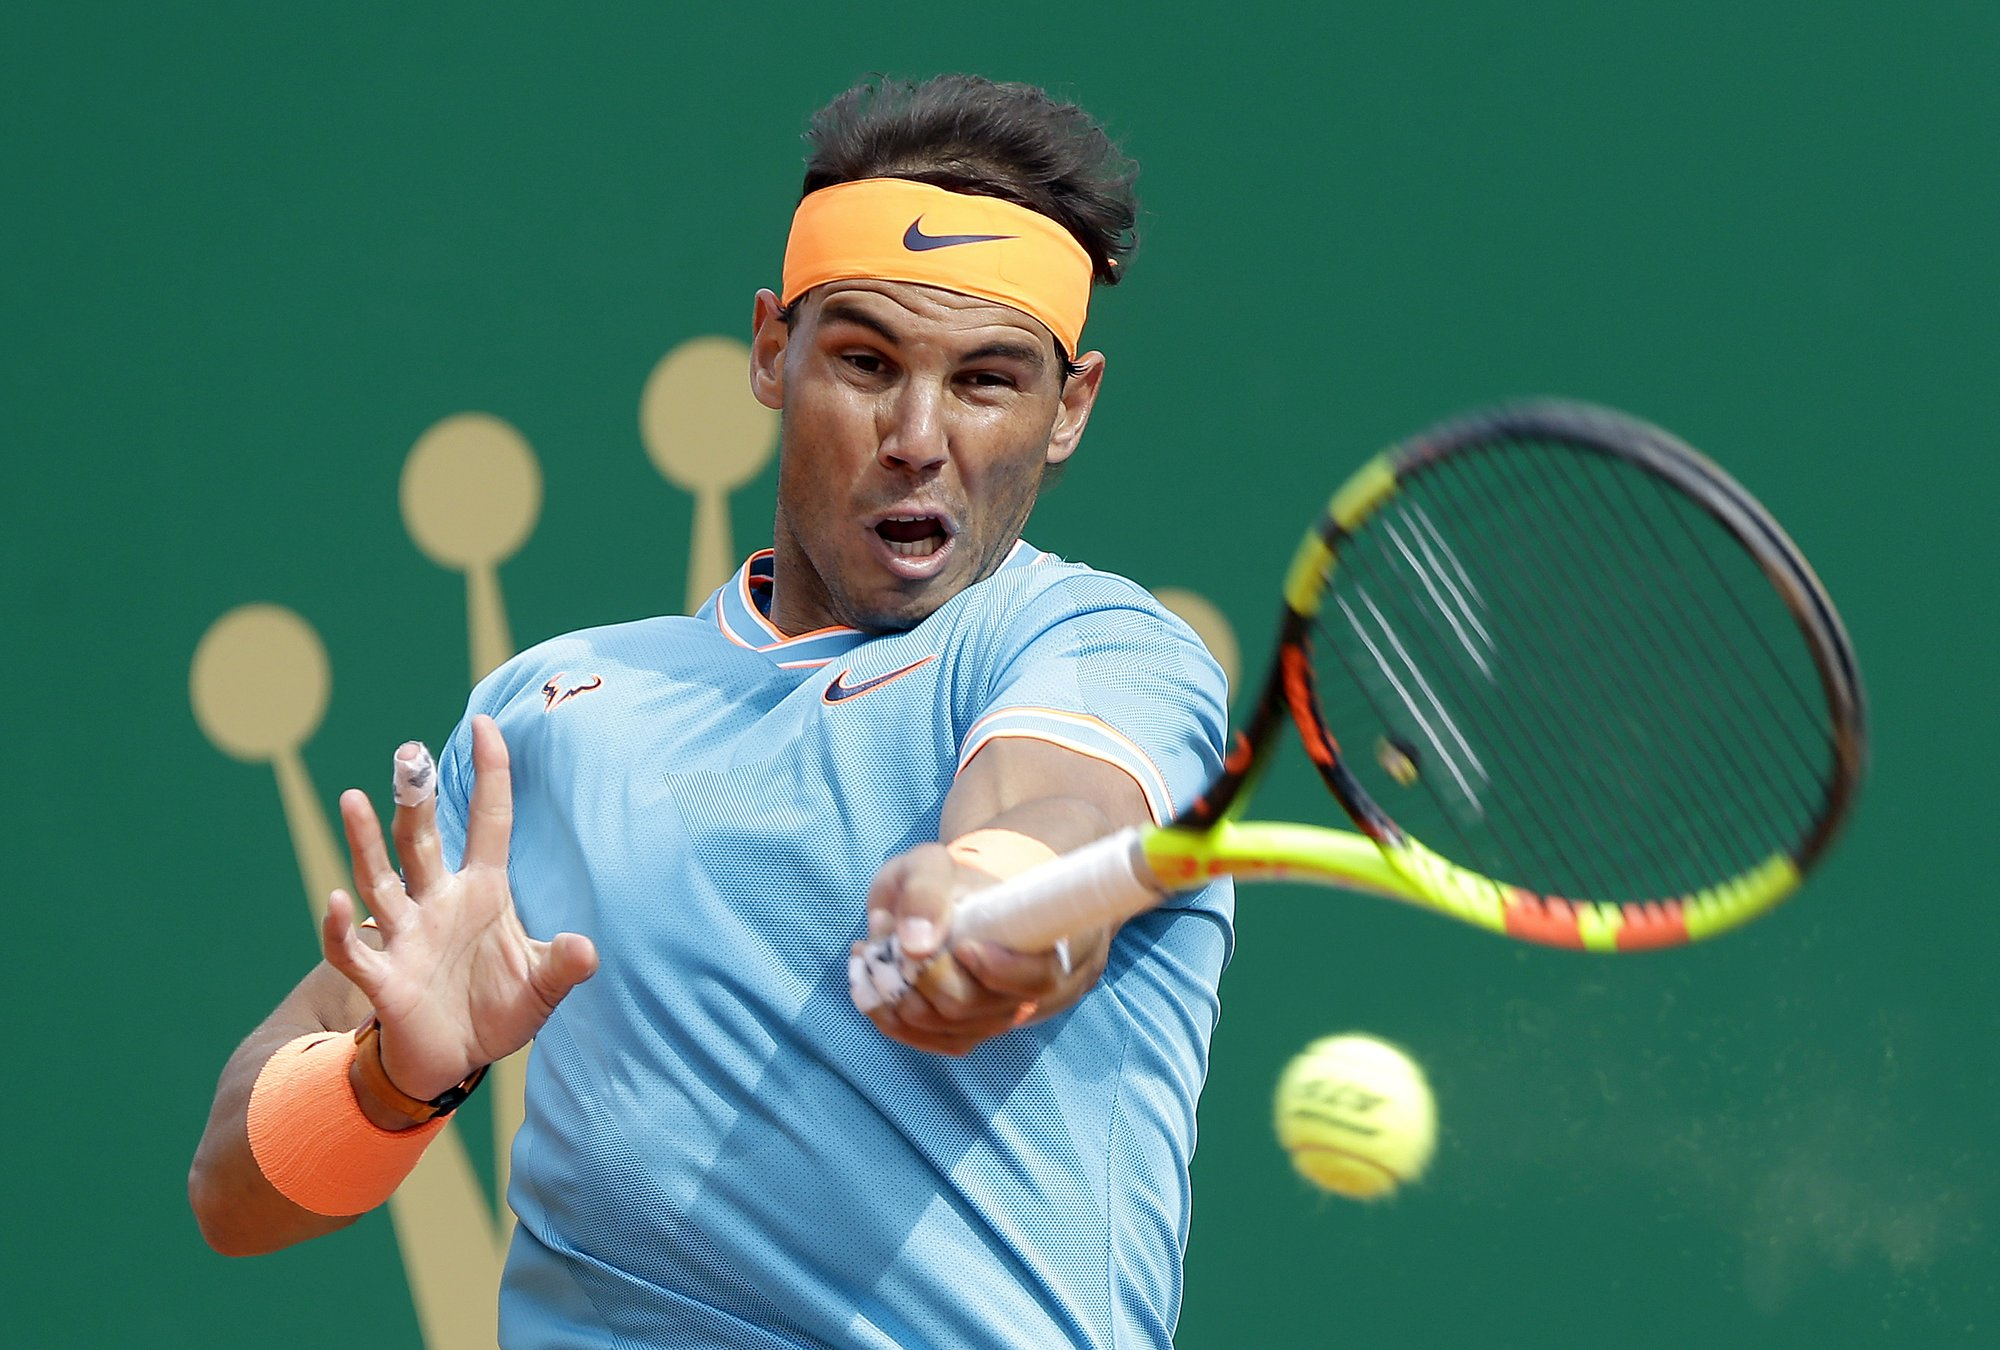 Nadal to face 63rd-ranked Mayer in Barcelona Open